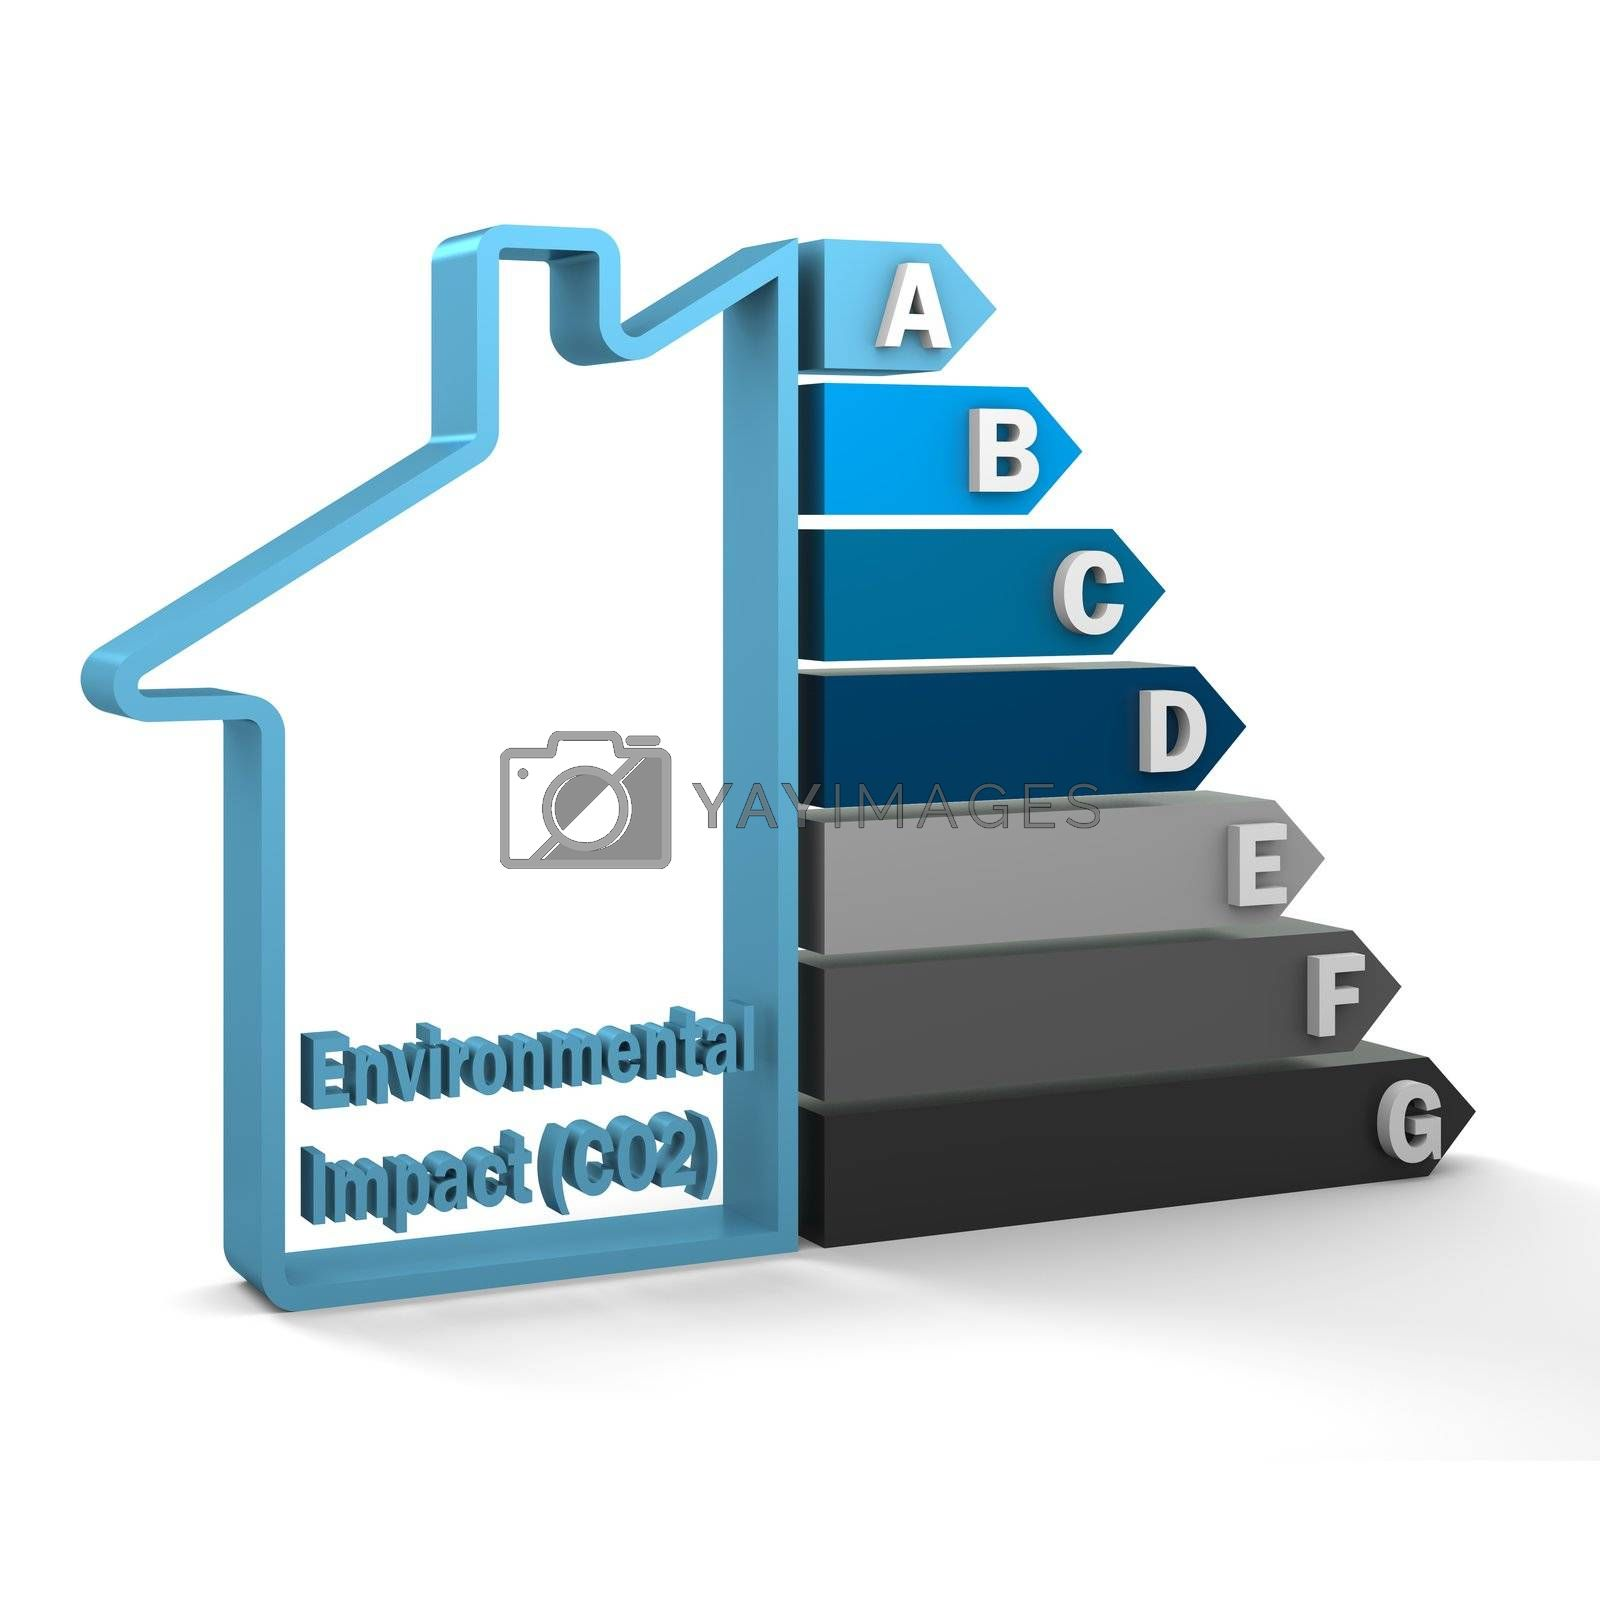 Building CO2 emission rating certification system. Part of a series